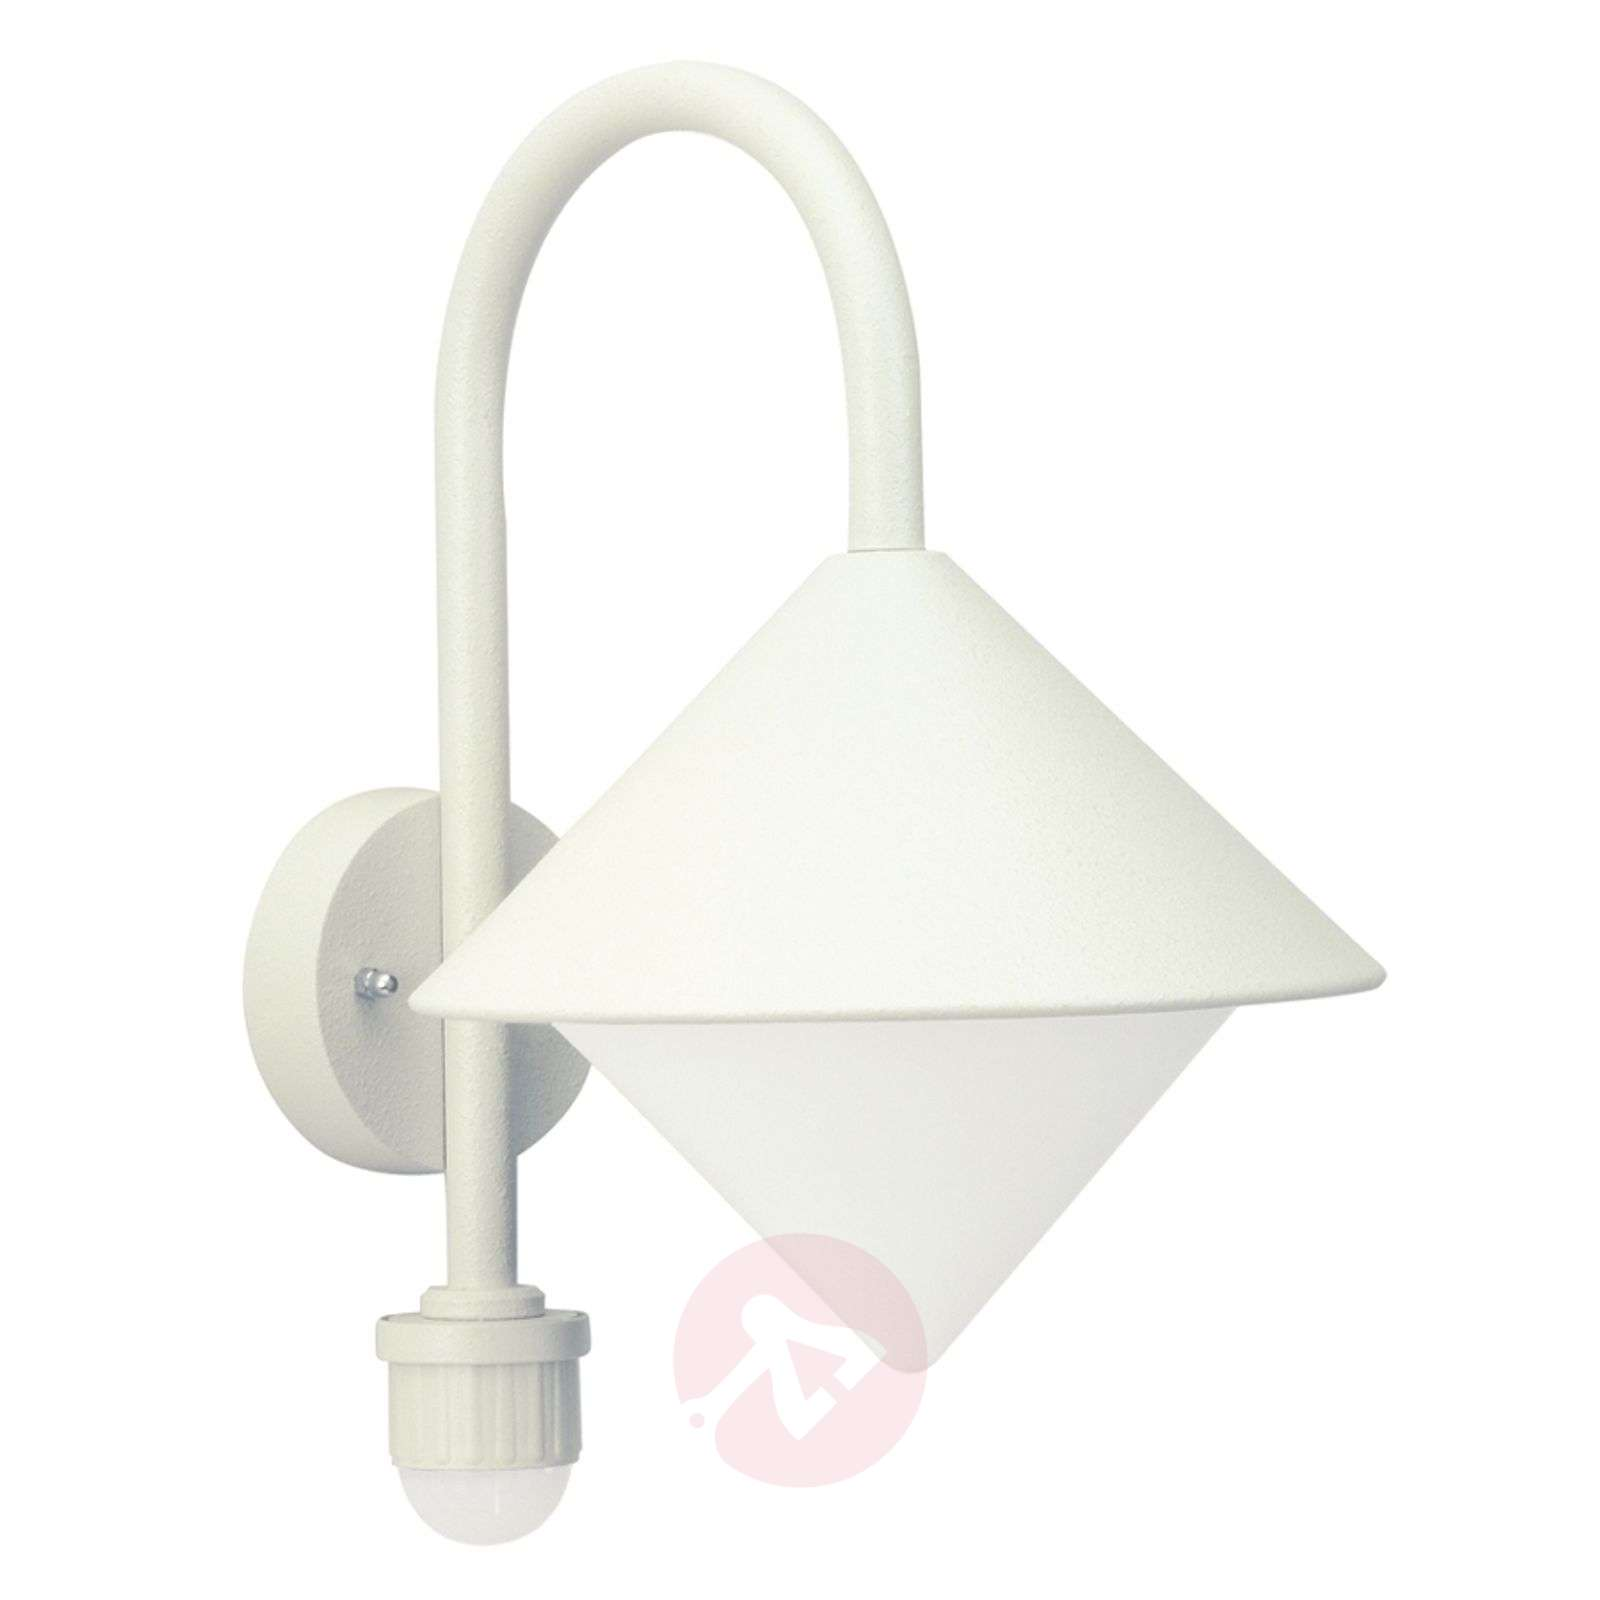 Jolanda outdoor wall light with a motion sensor-4001591X-02